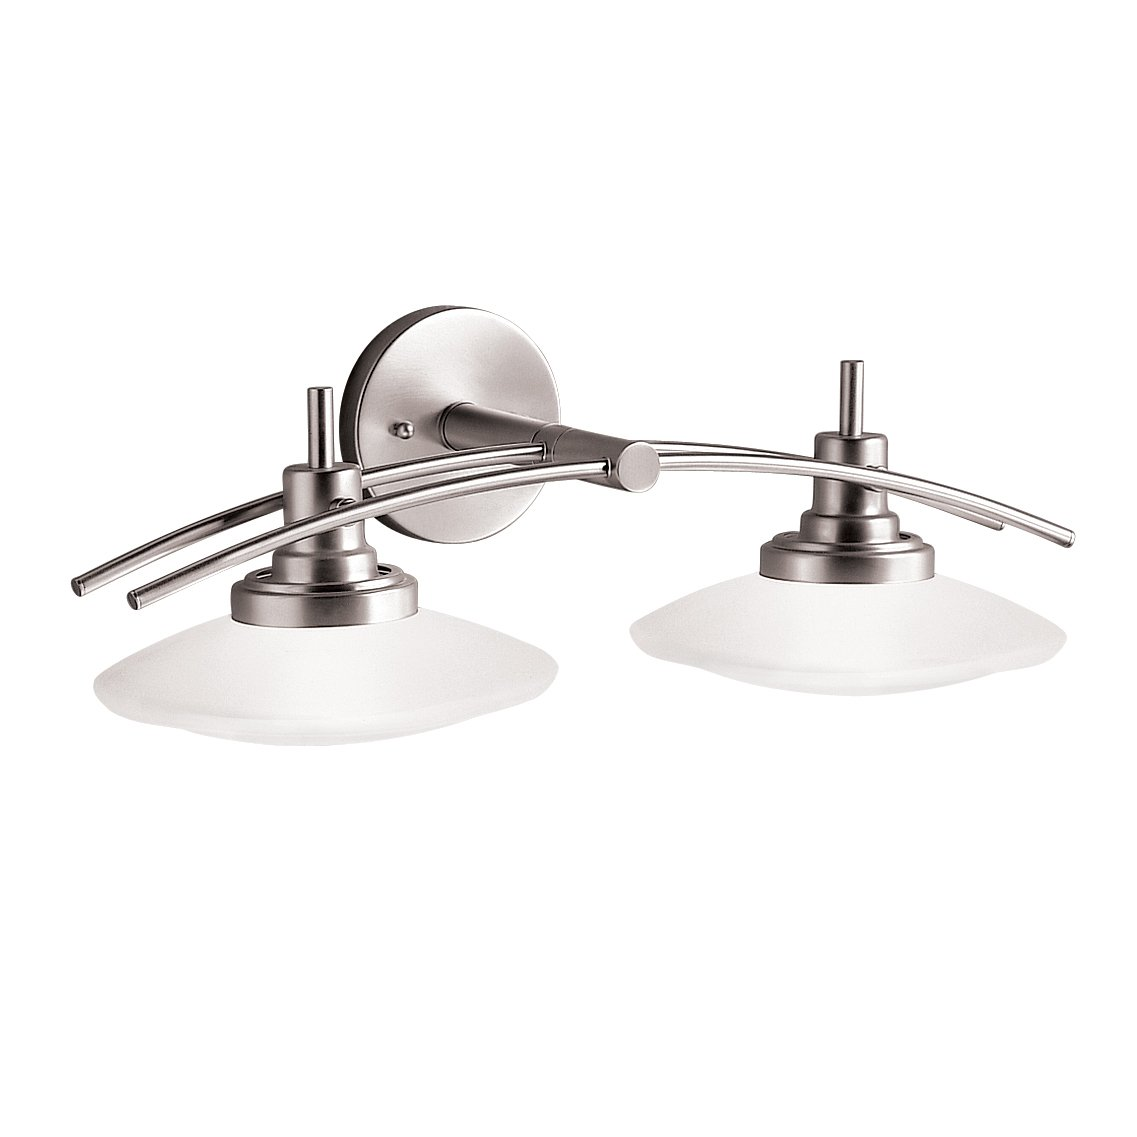 Kichler 6162ni structures bath 2 light halogen brushed nickel kichler 6162ni structures bath 2 light halogen brushed nickel vanity lighting fixtures amazon aloadofball Image collections